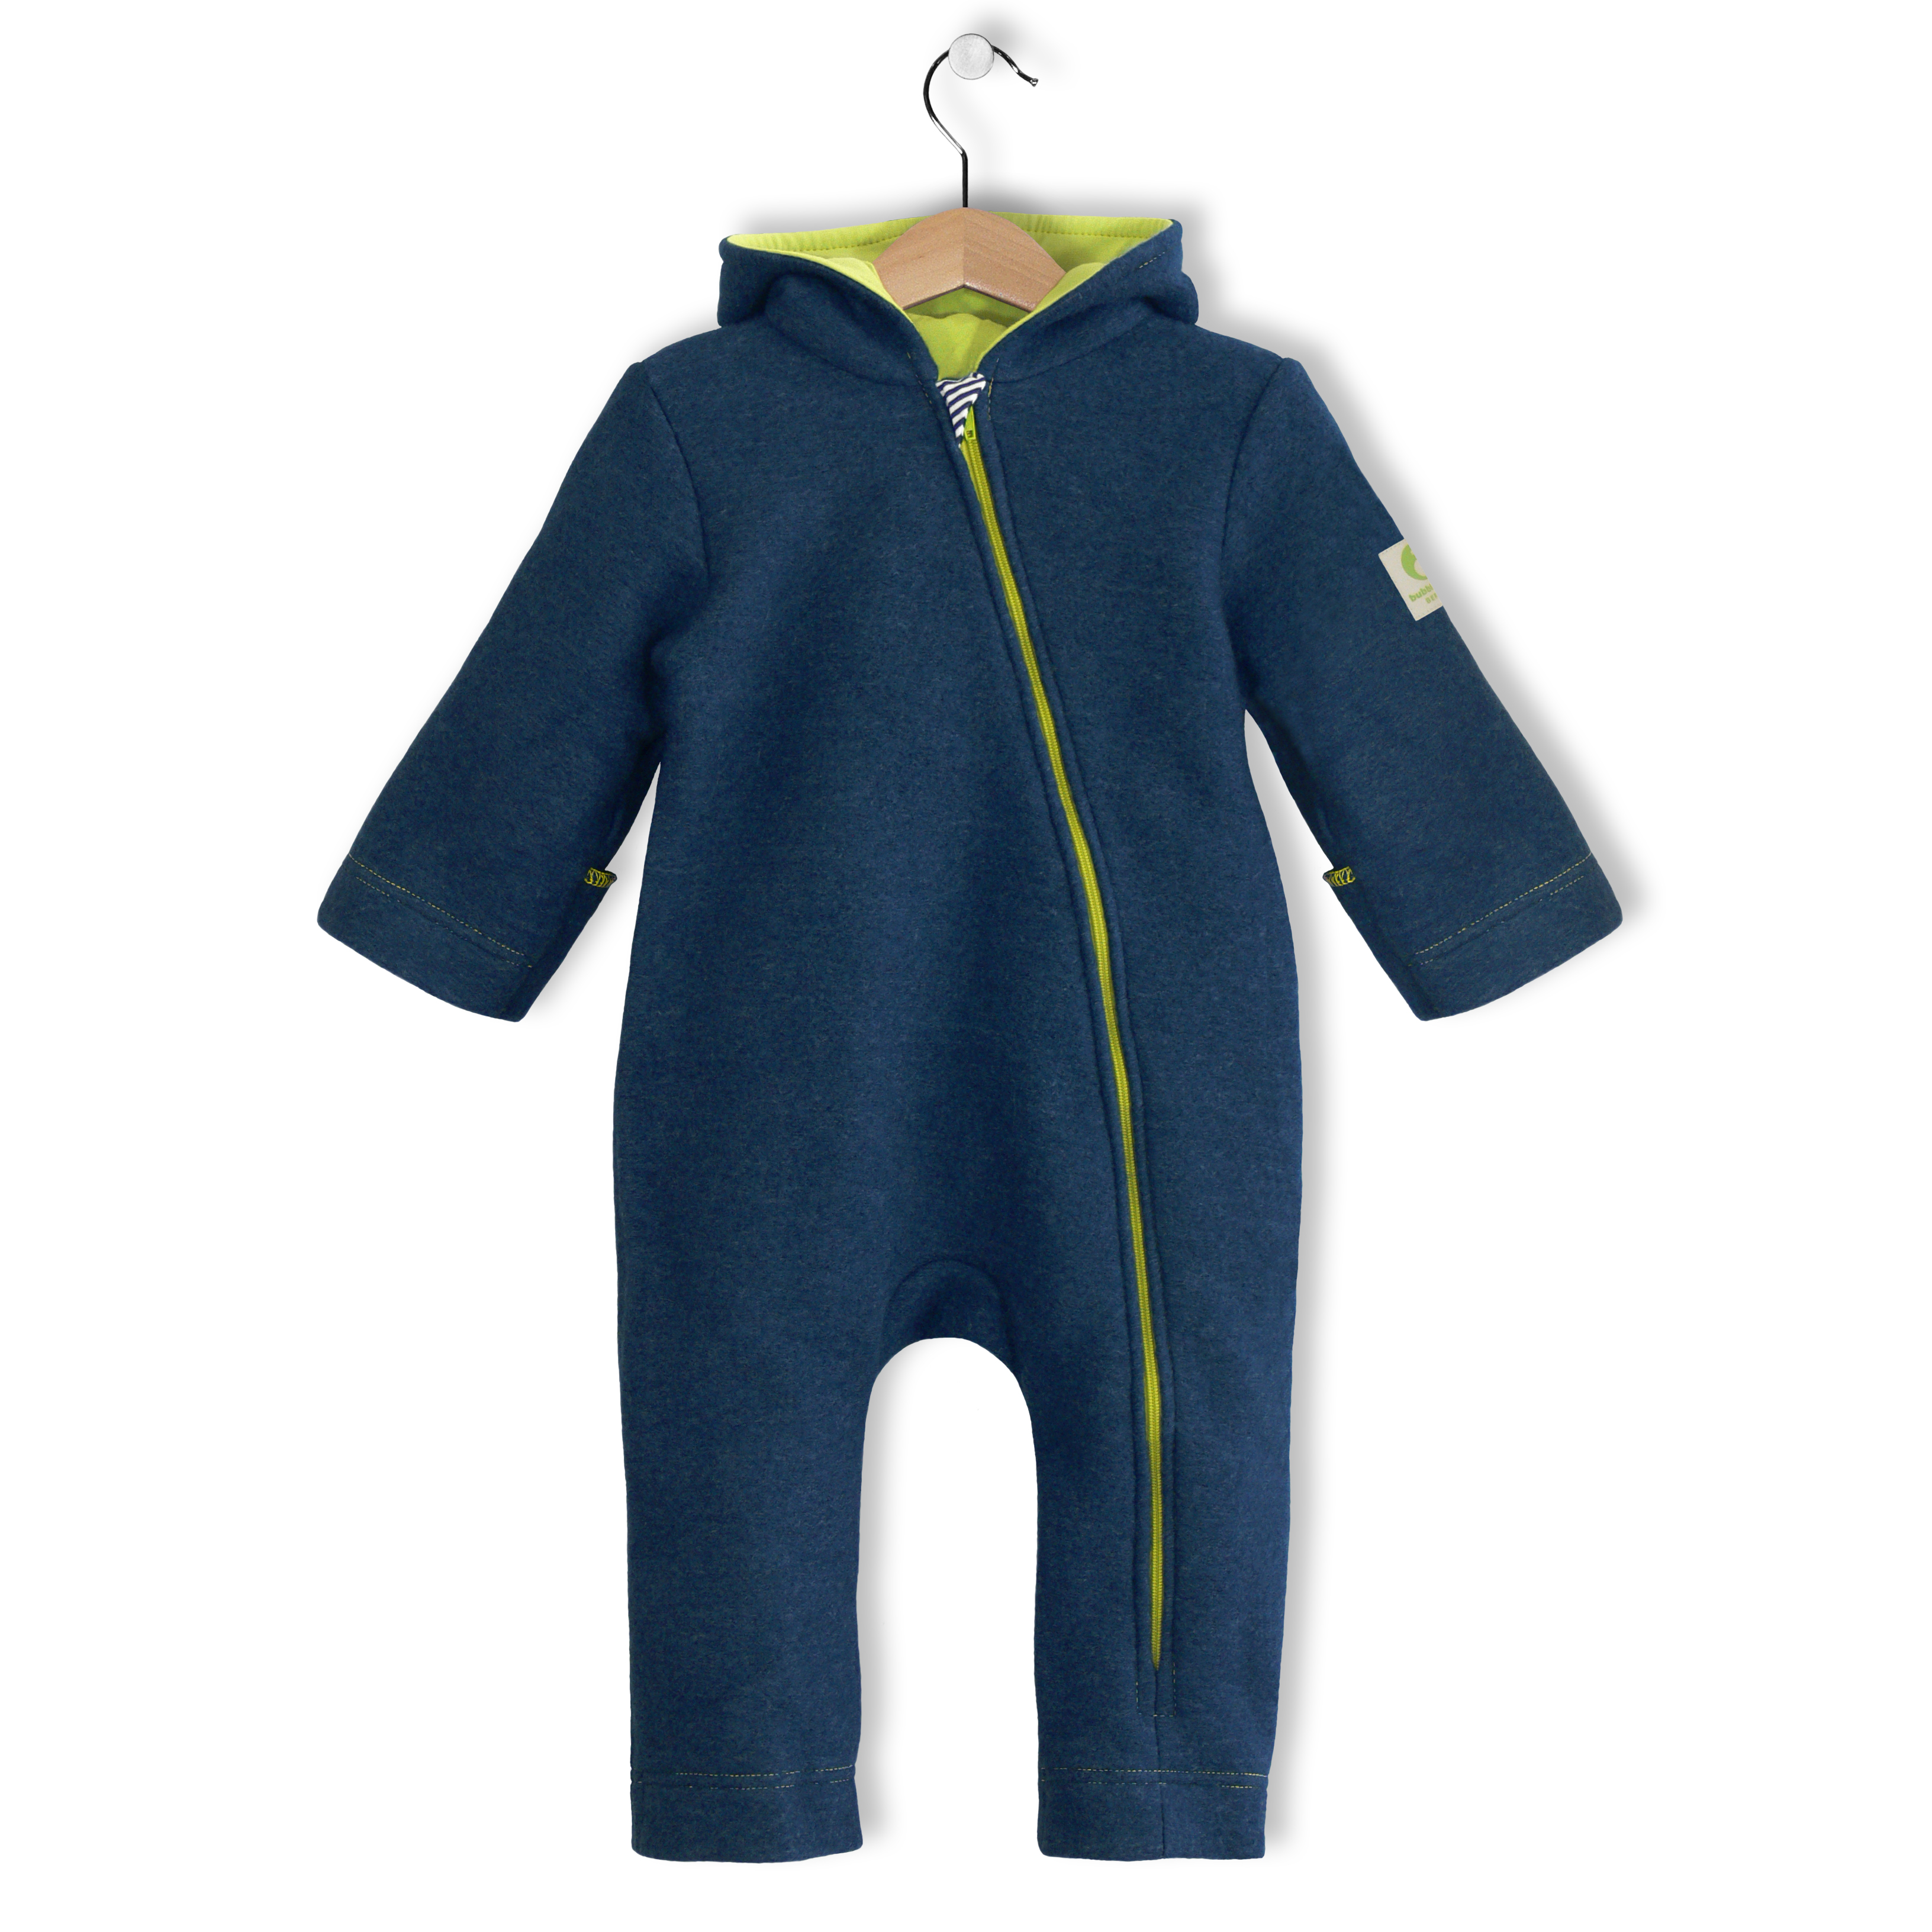 bubble.kid Winteroverall ANU Tec-Wolle marine